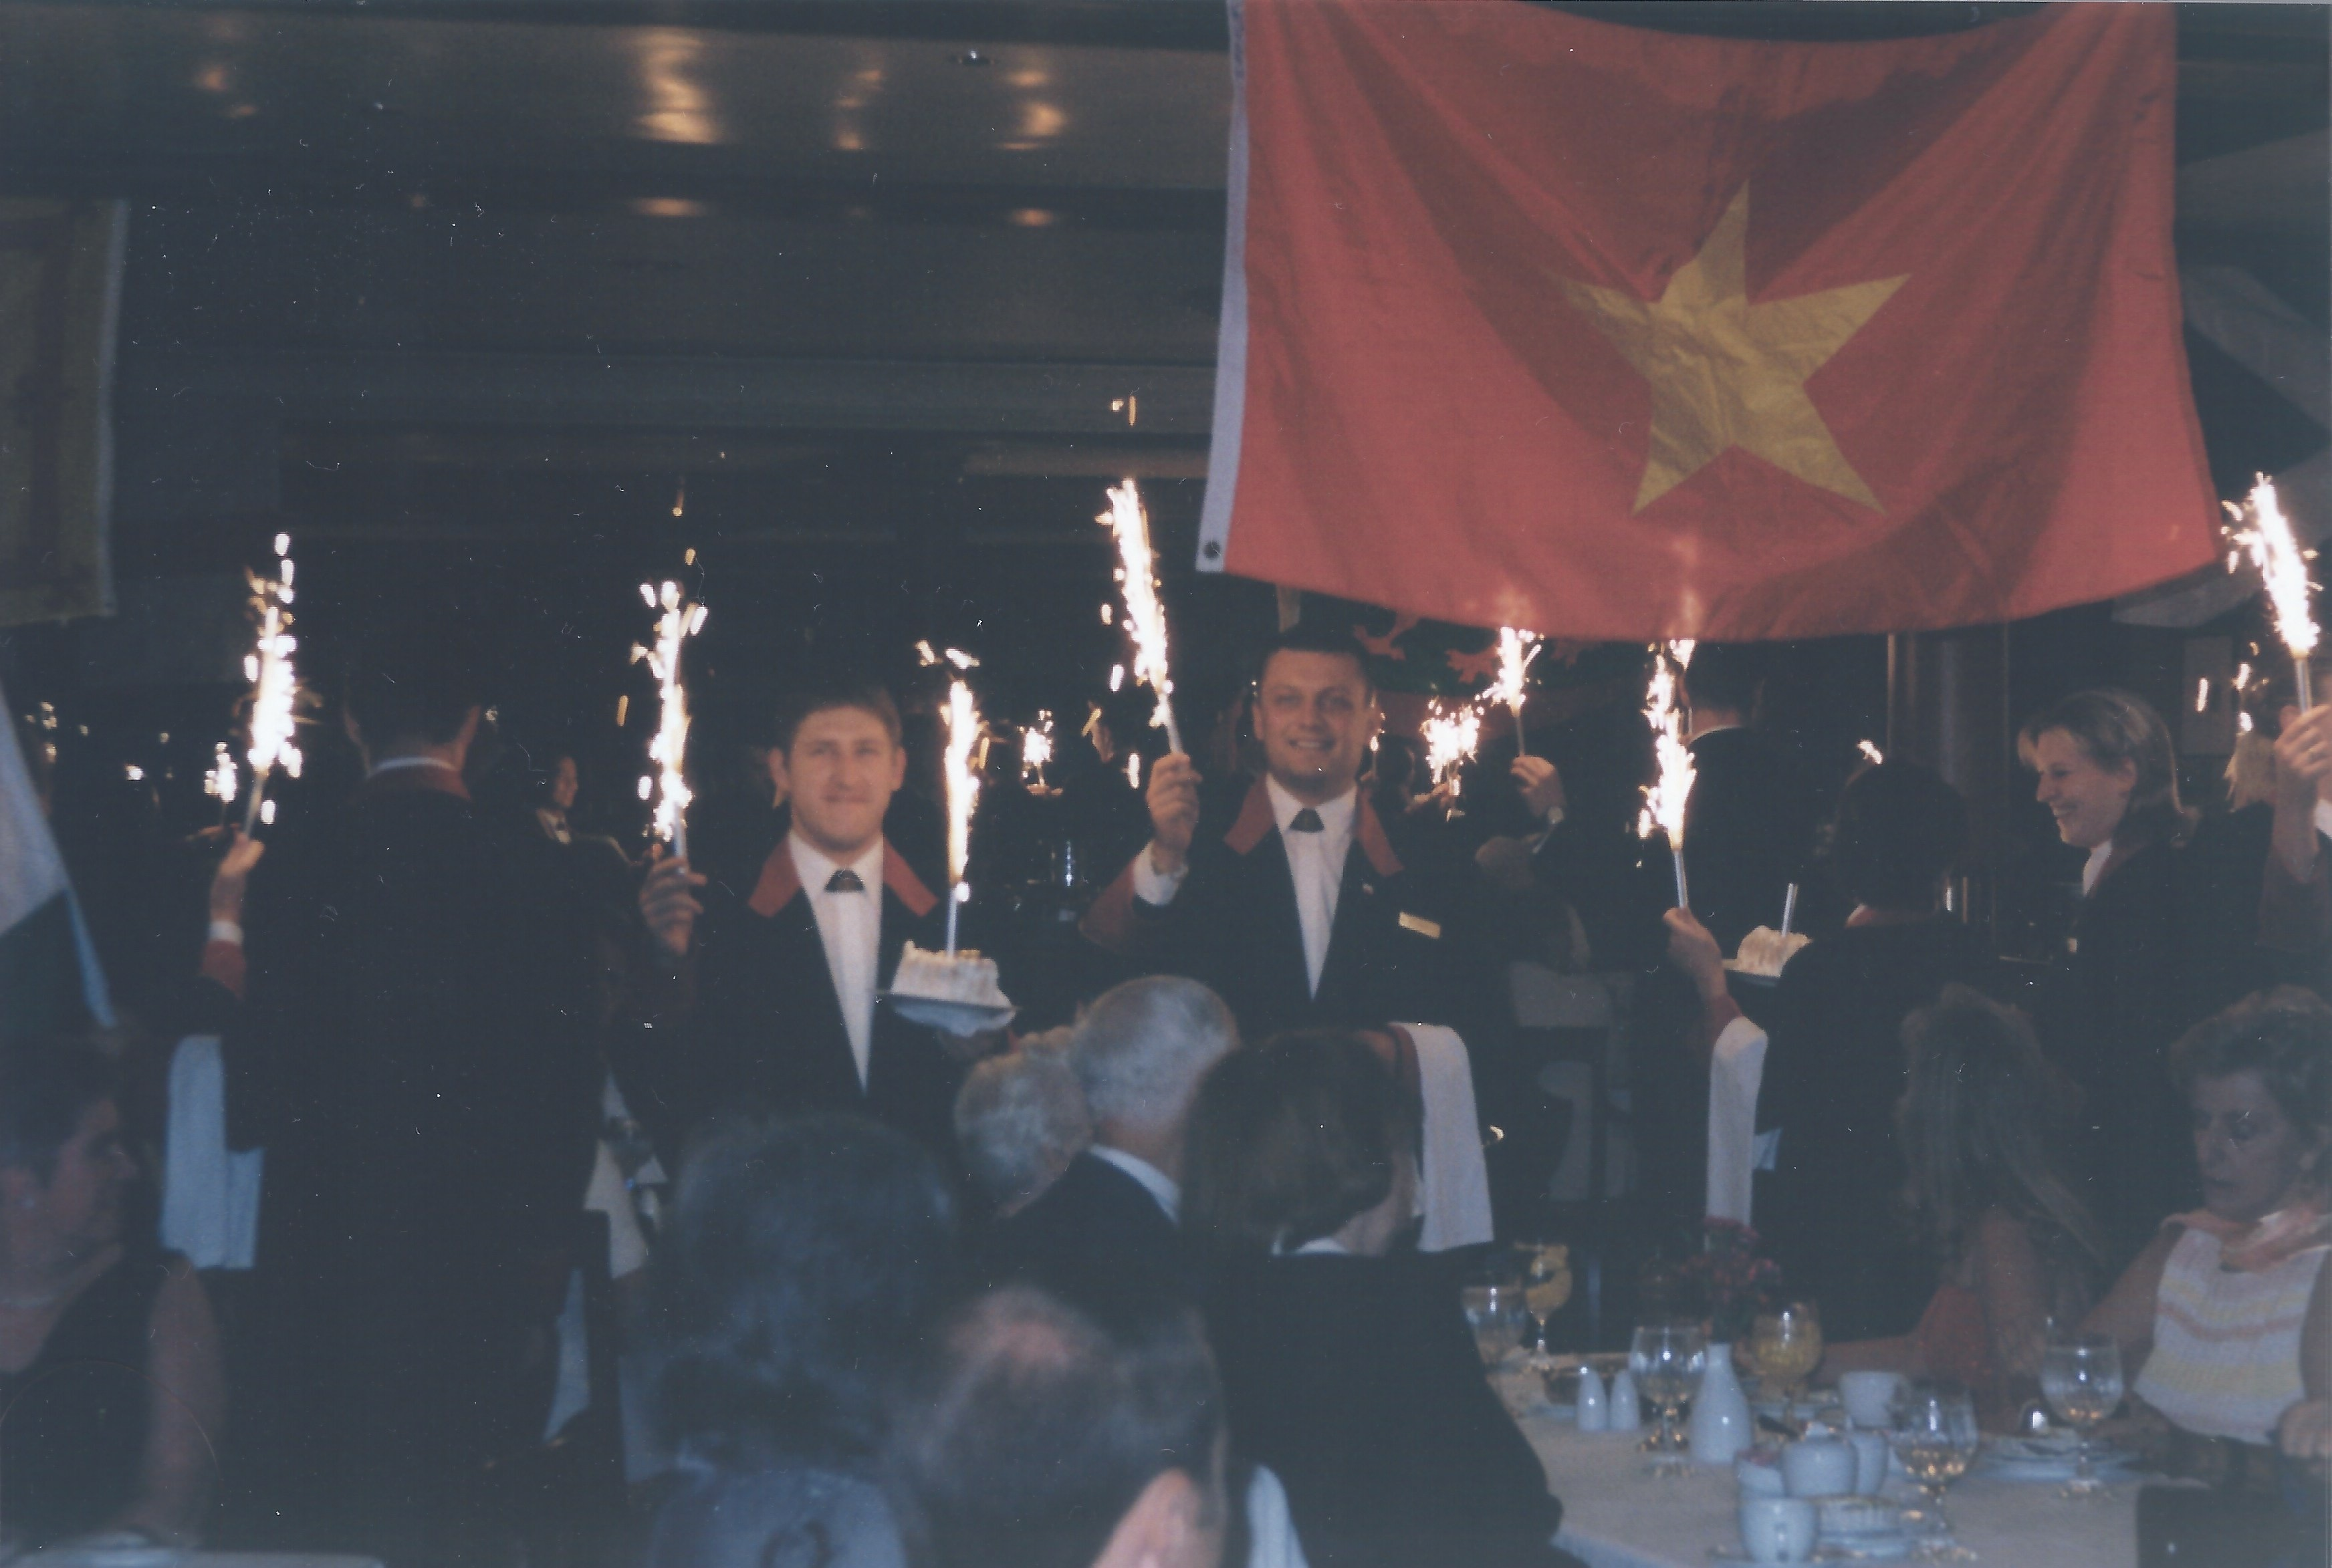 Photograph of the two waiters during a celebration